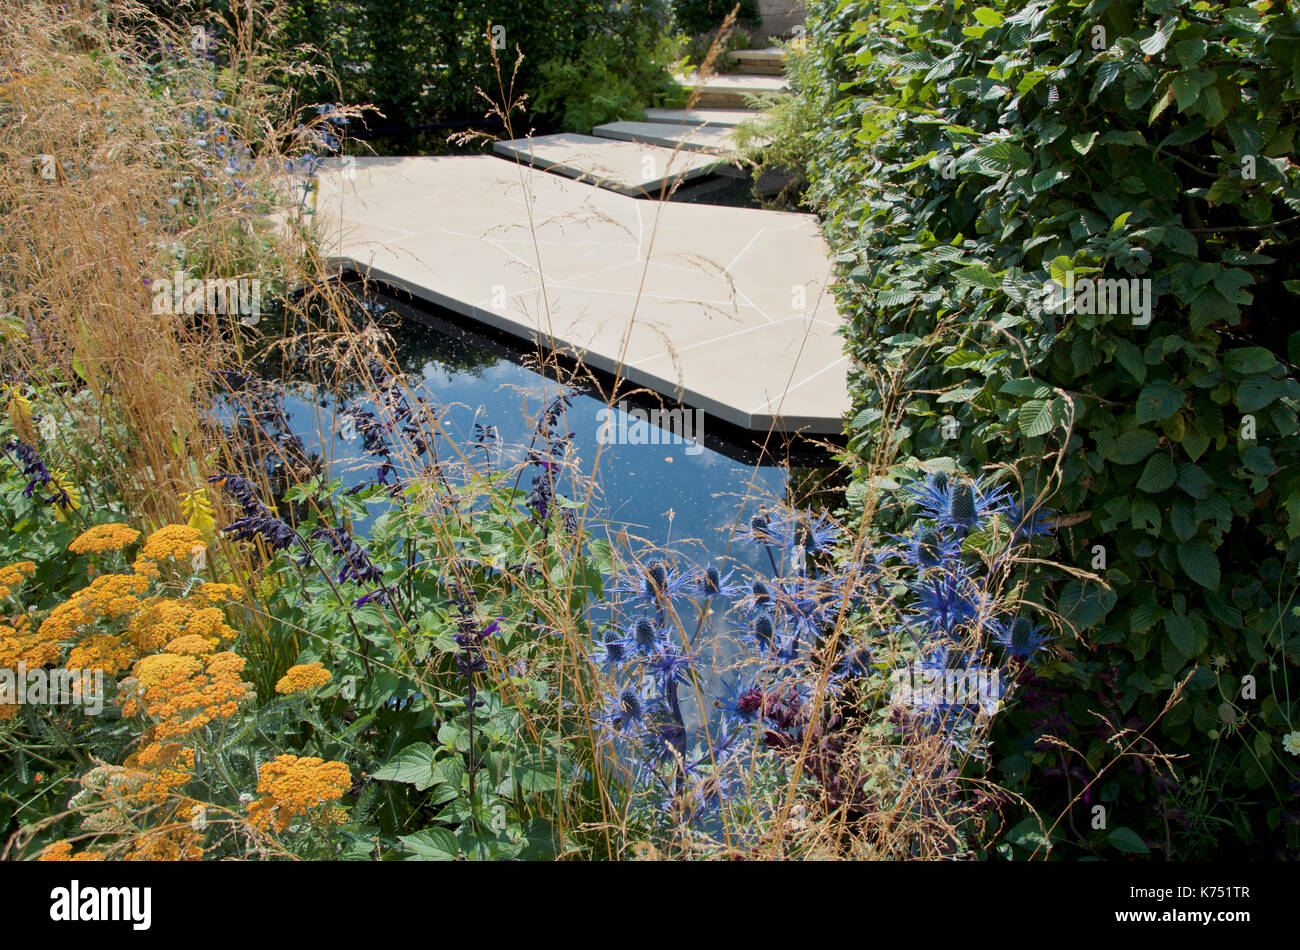 Modern paving based on 'crazy paving' technique in the Watch This Space garden designed by Andy Sturgeon at RHS Hampton Court Palace Flower Show 2017. - Stock Image